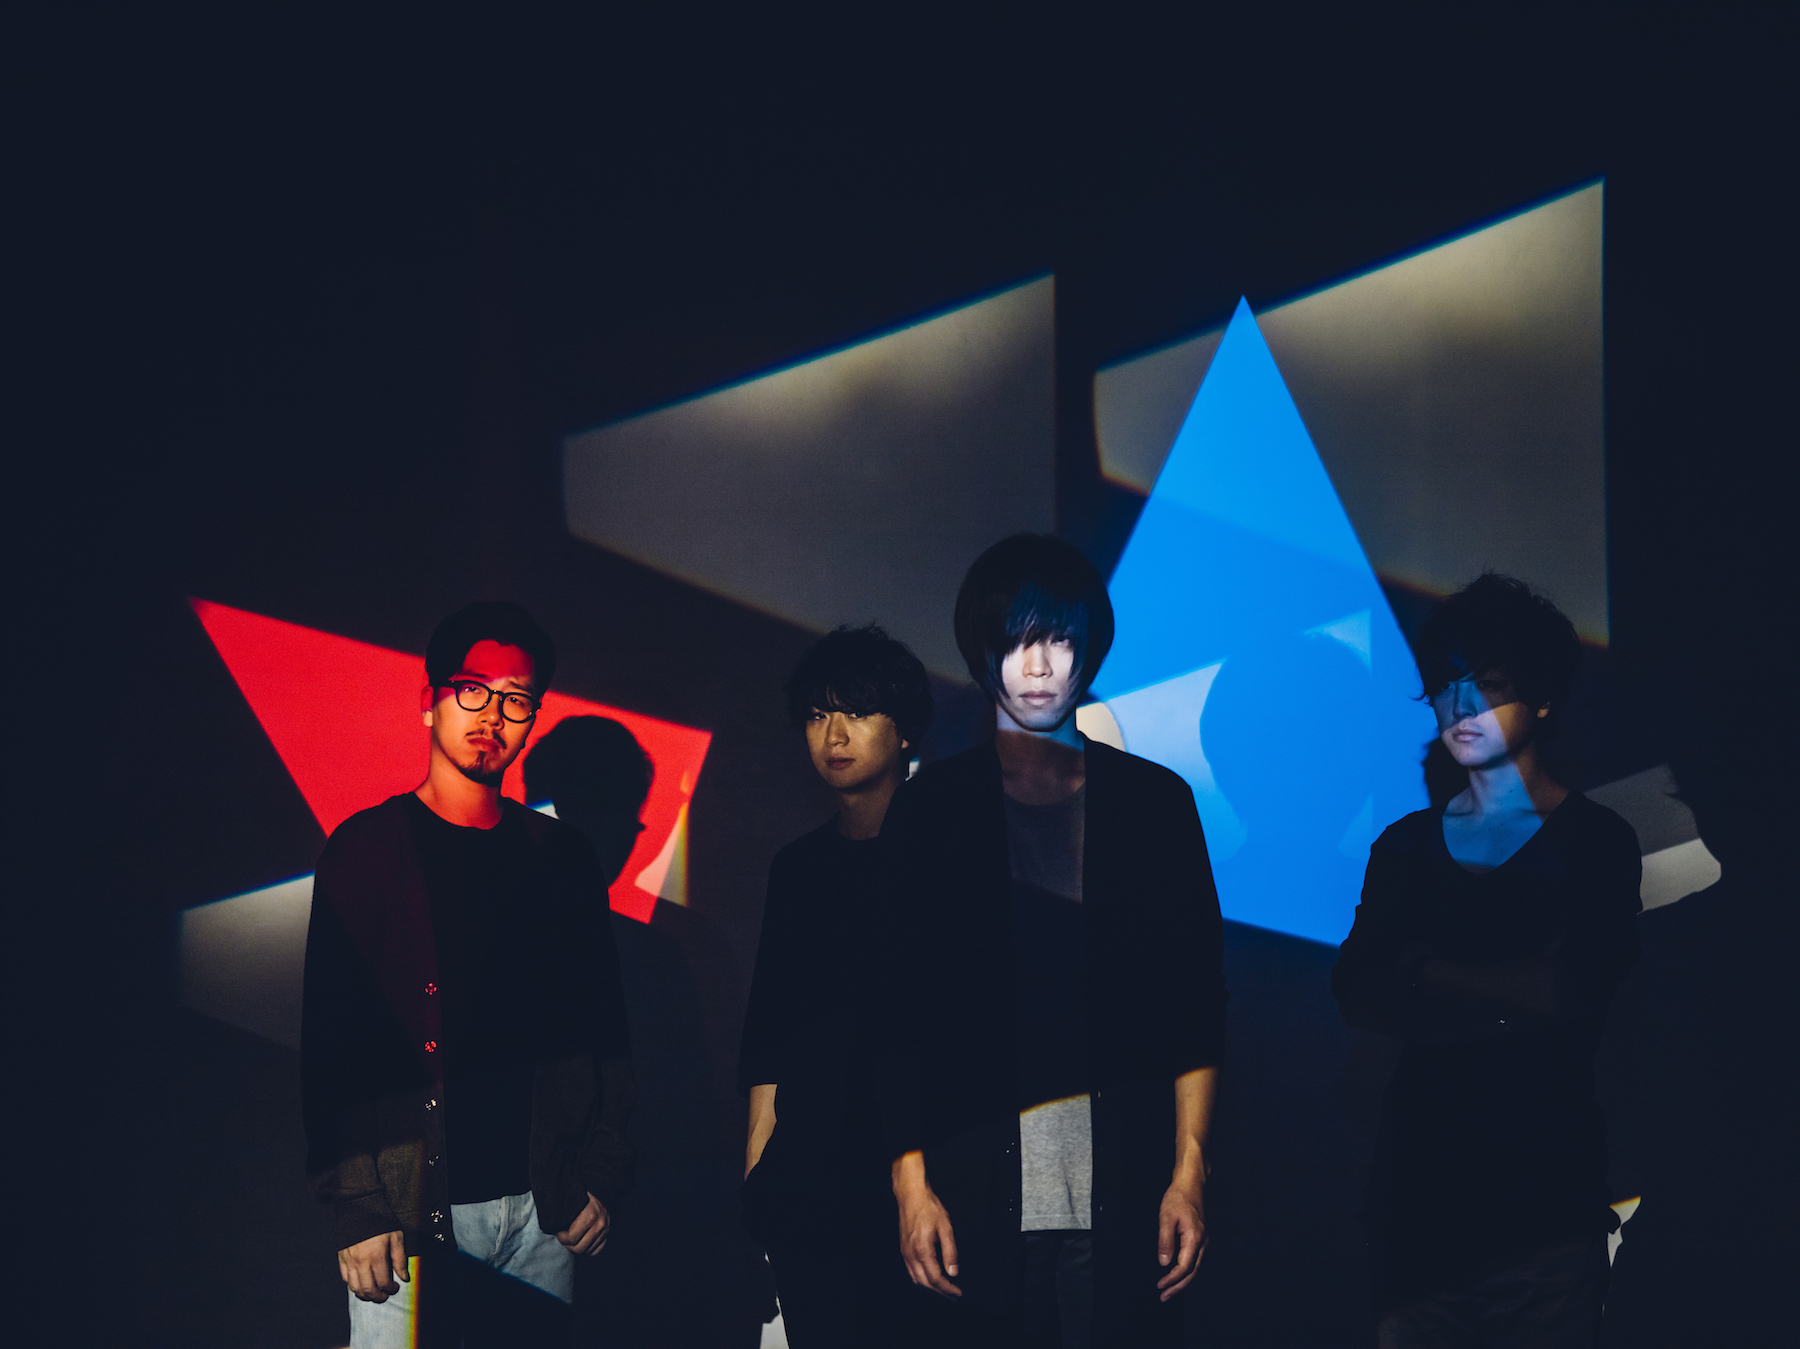 androp 撮影=西槇太一